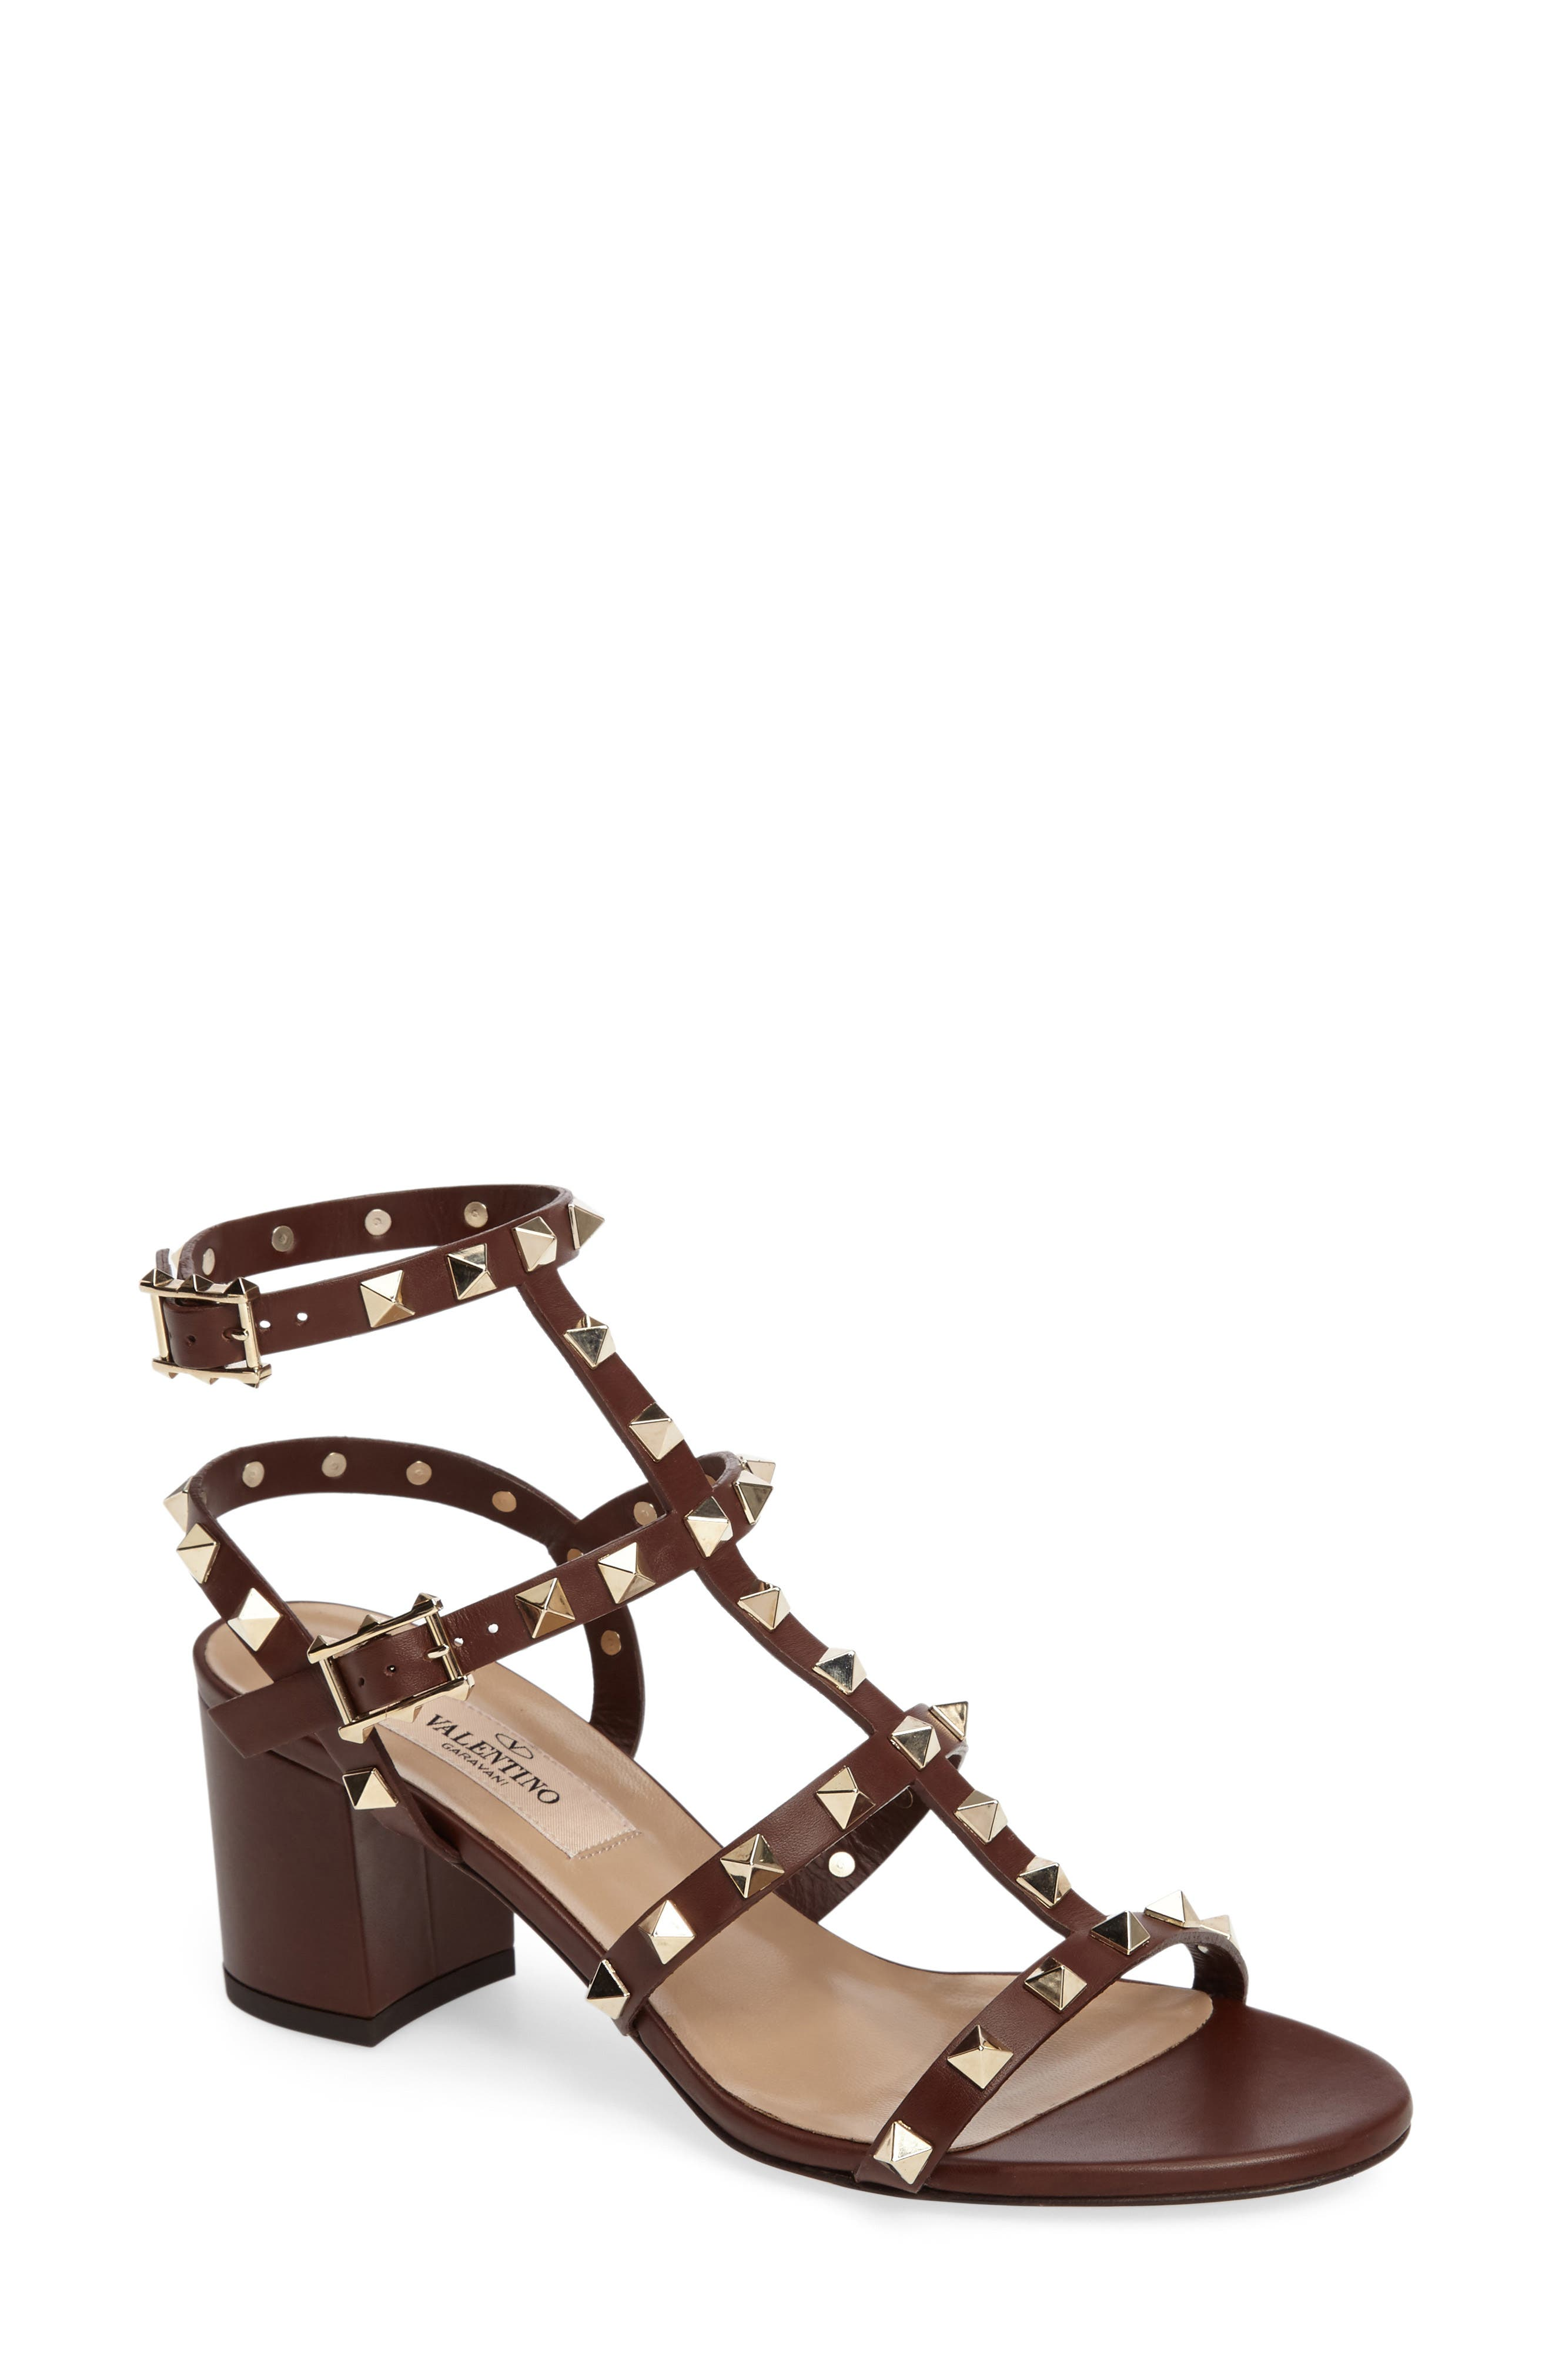 'Rockstud' Sandal,                             Main thumbnail 1, color,                             Light Brown Leather